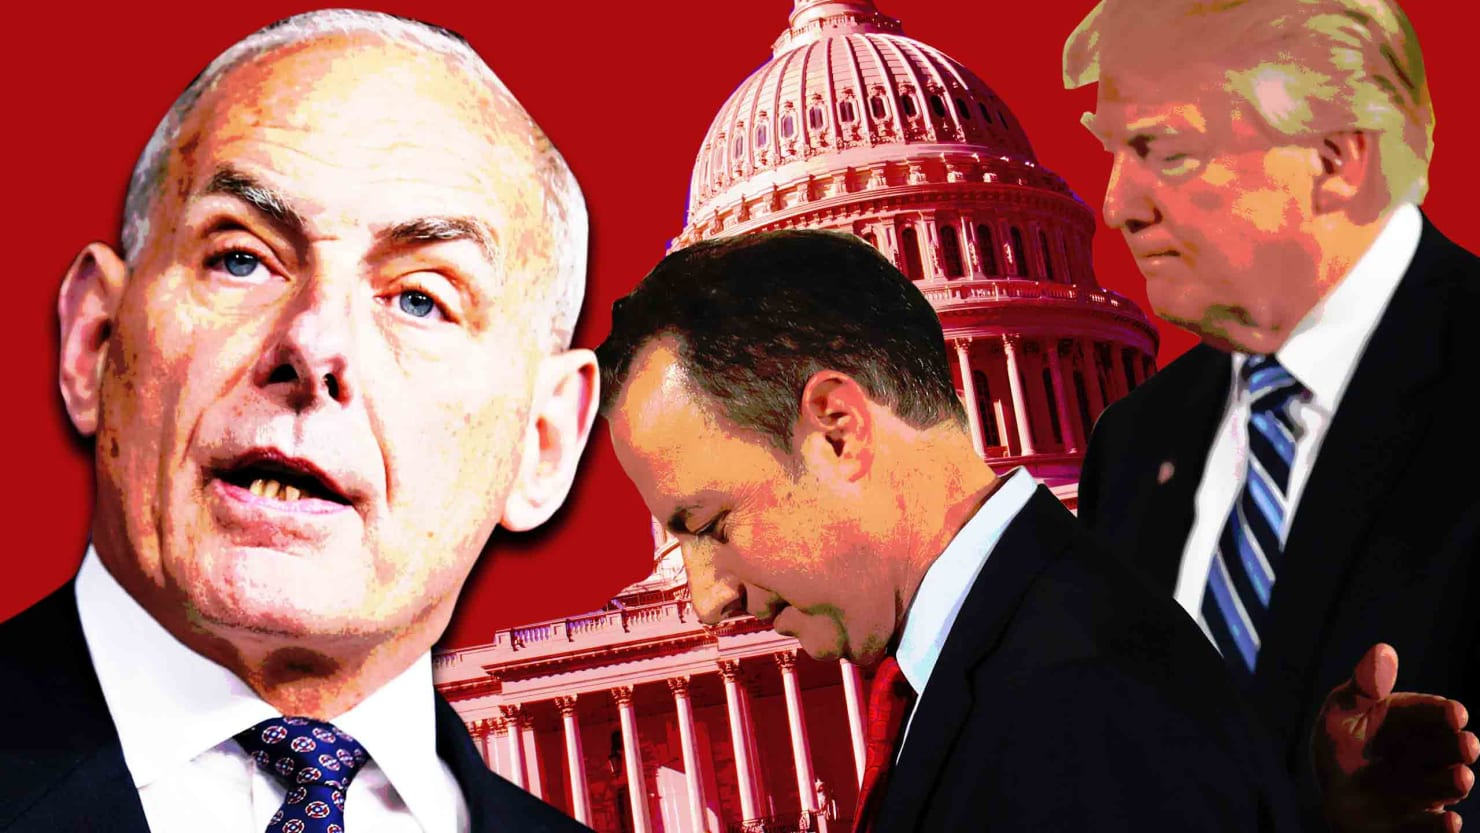 Image result for images of Priebus vs John Kelly